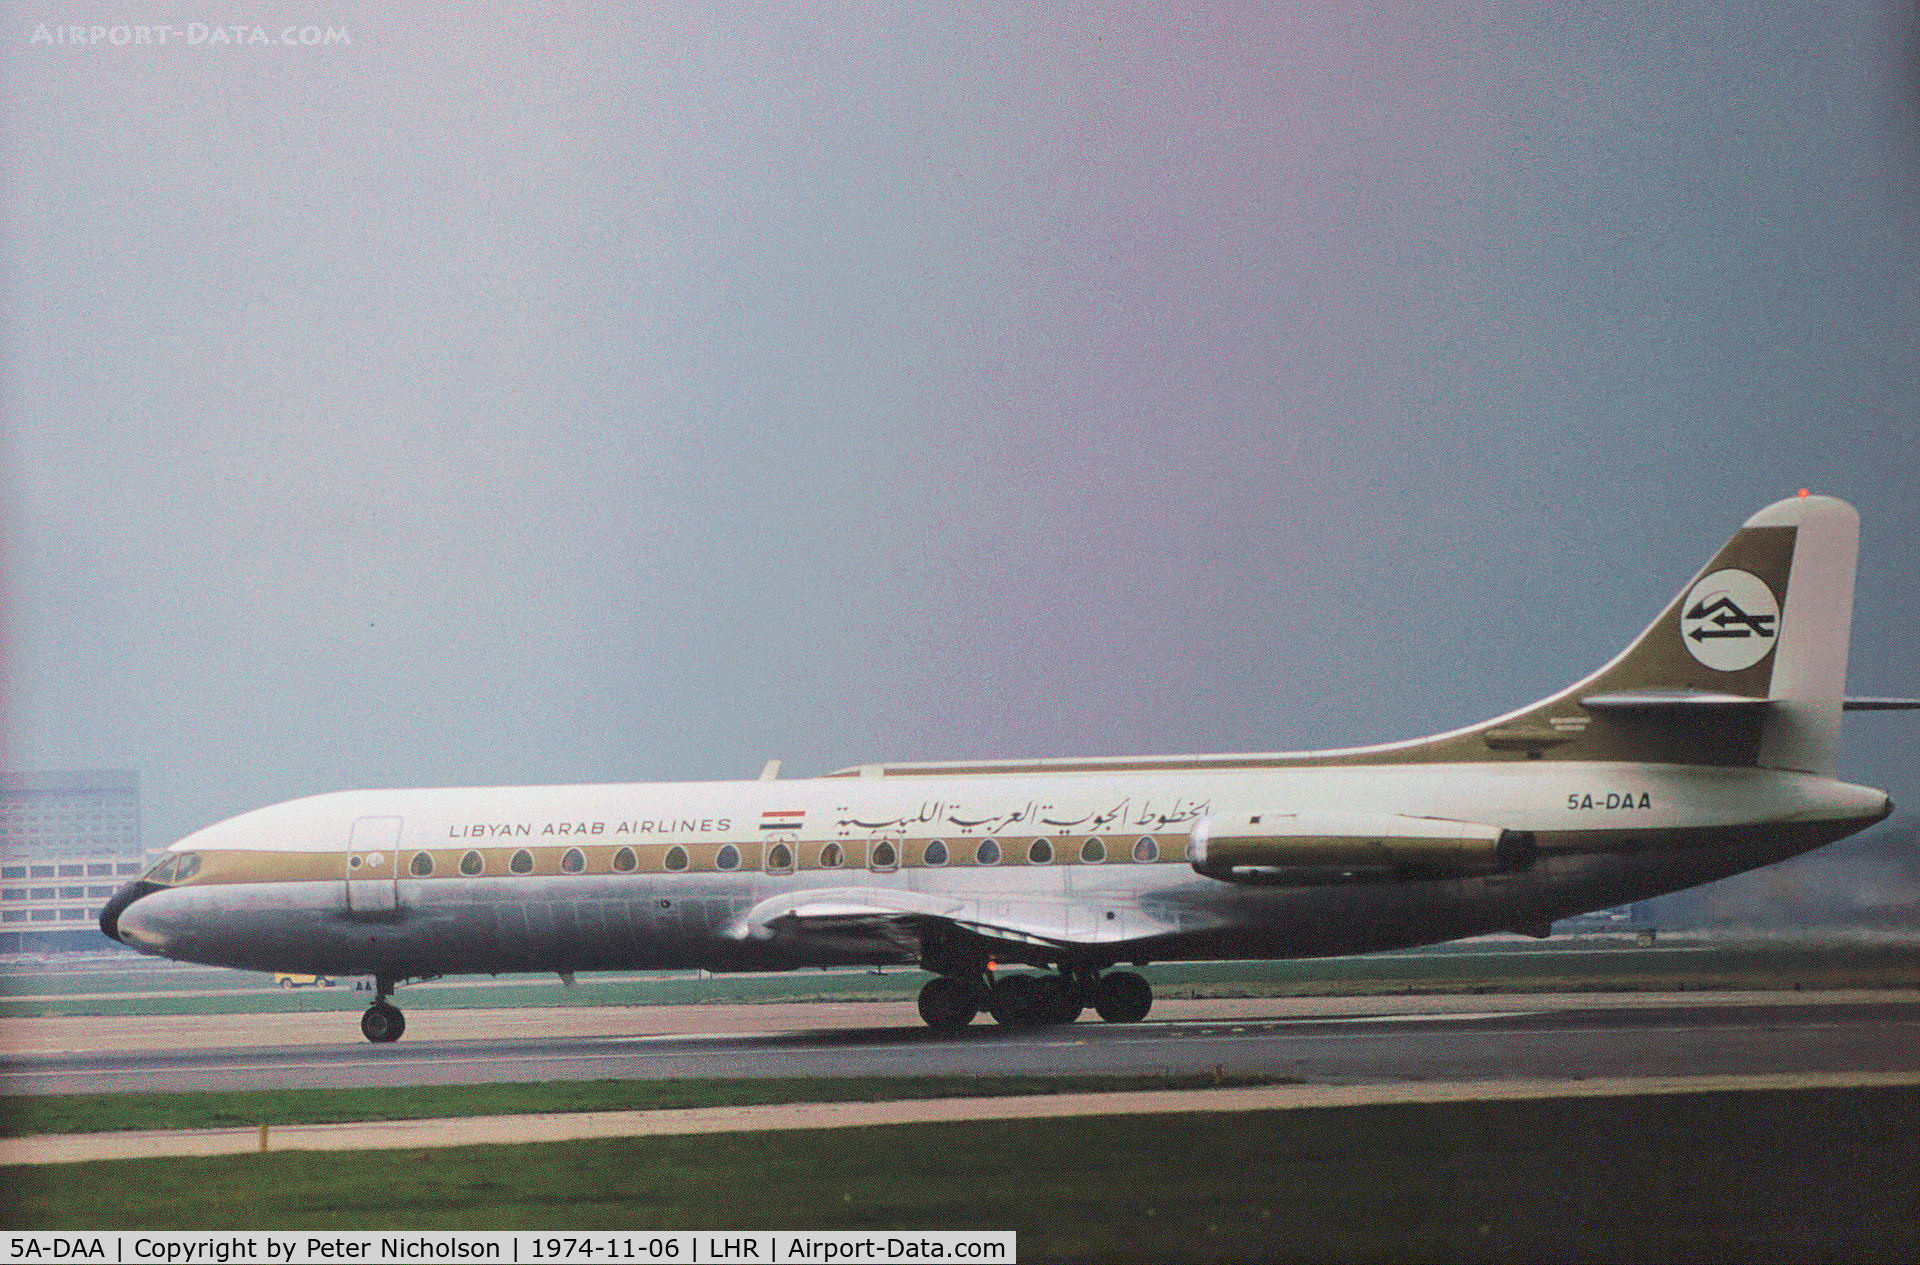 5A-DAA, 1963 Sud Aviation SE-210 Caravelle VI-R C/N 158, Caravelle VI-R of Libyan Arab Airlines preparing for take-off on Runway 27L at Heathrow in November 1974.